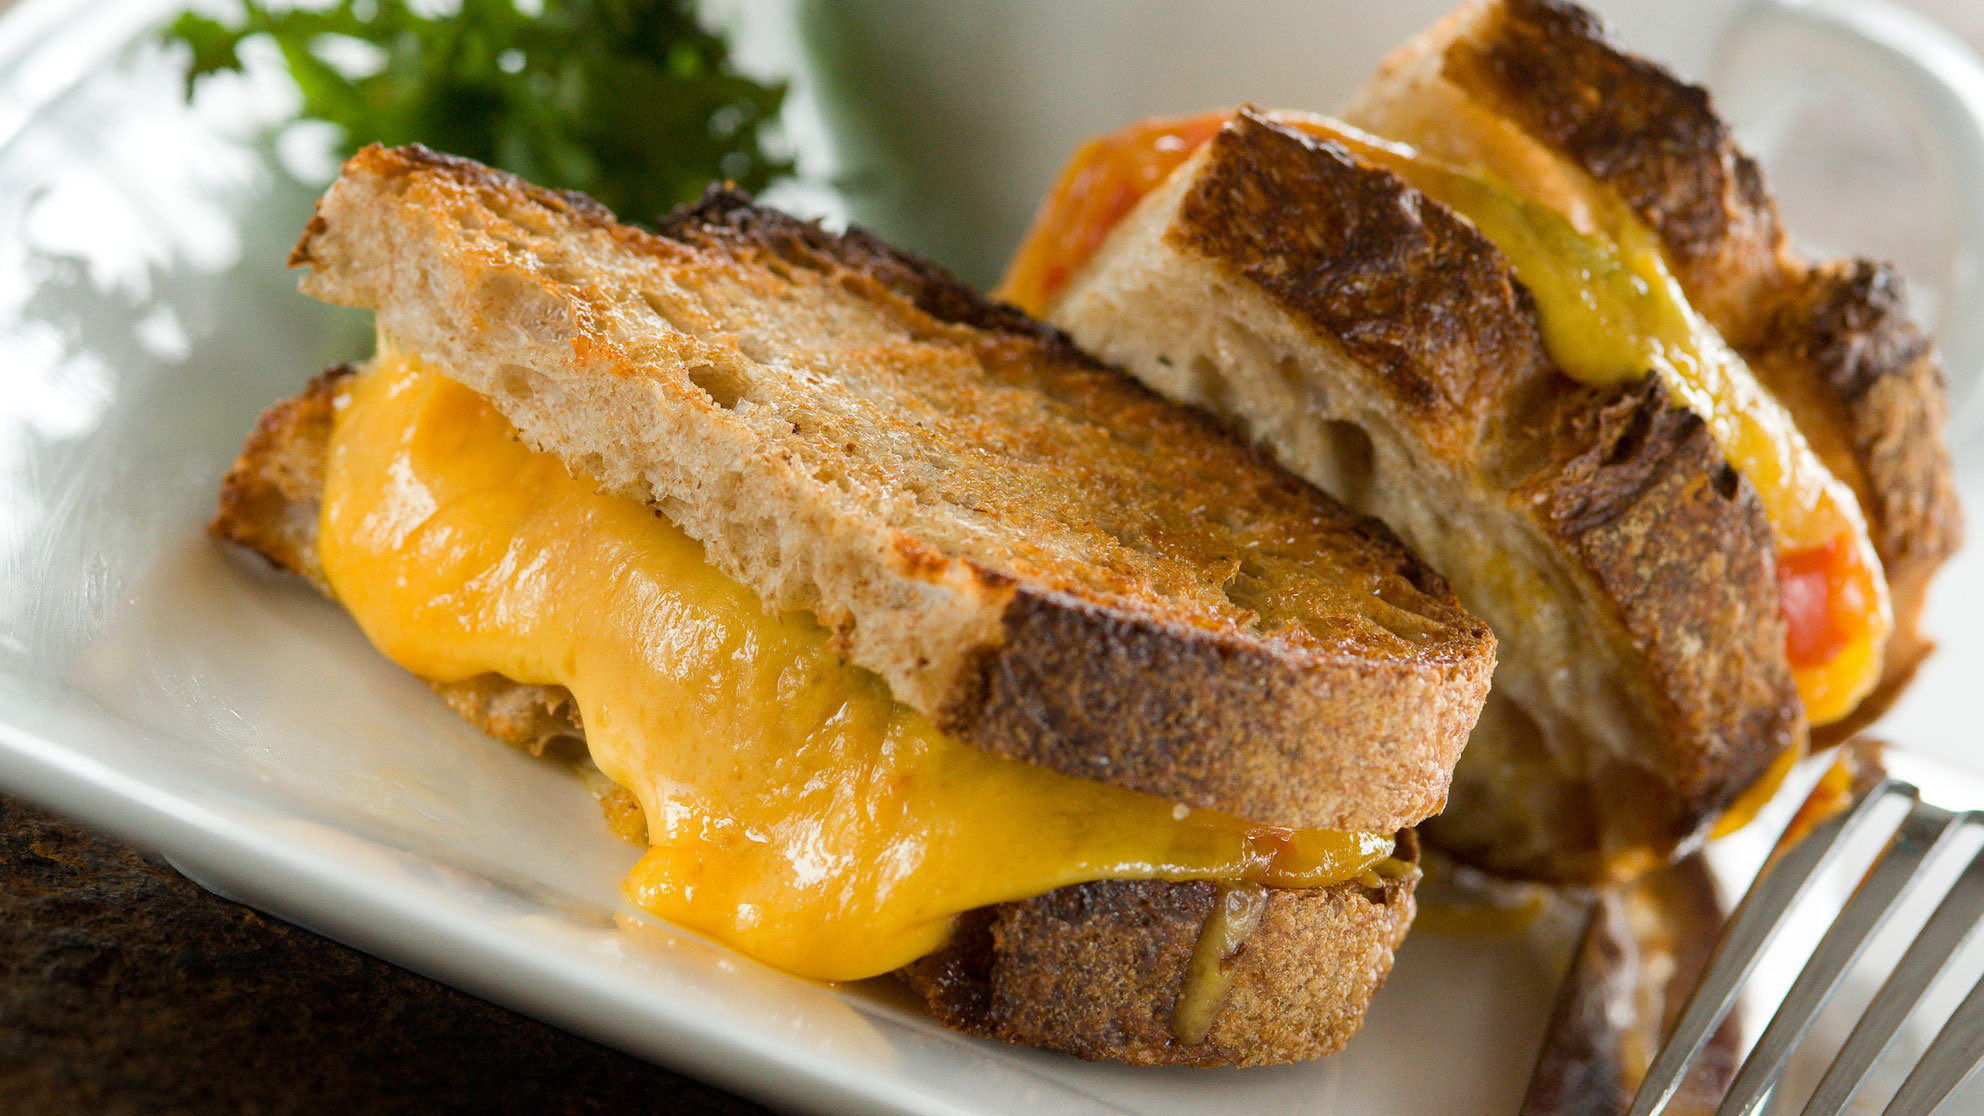 A grilled cheese sandwich. GETTY IMAGES